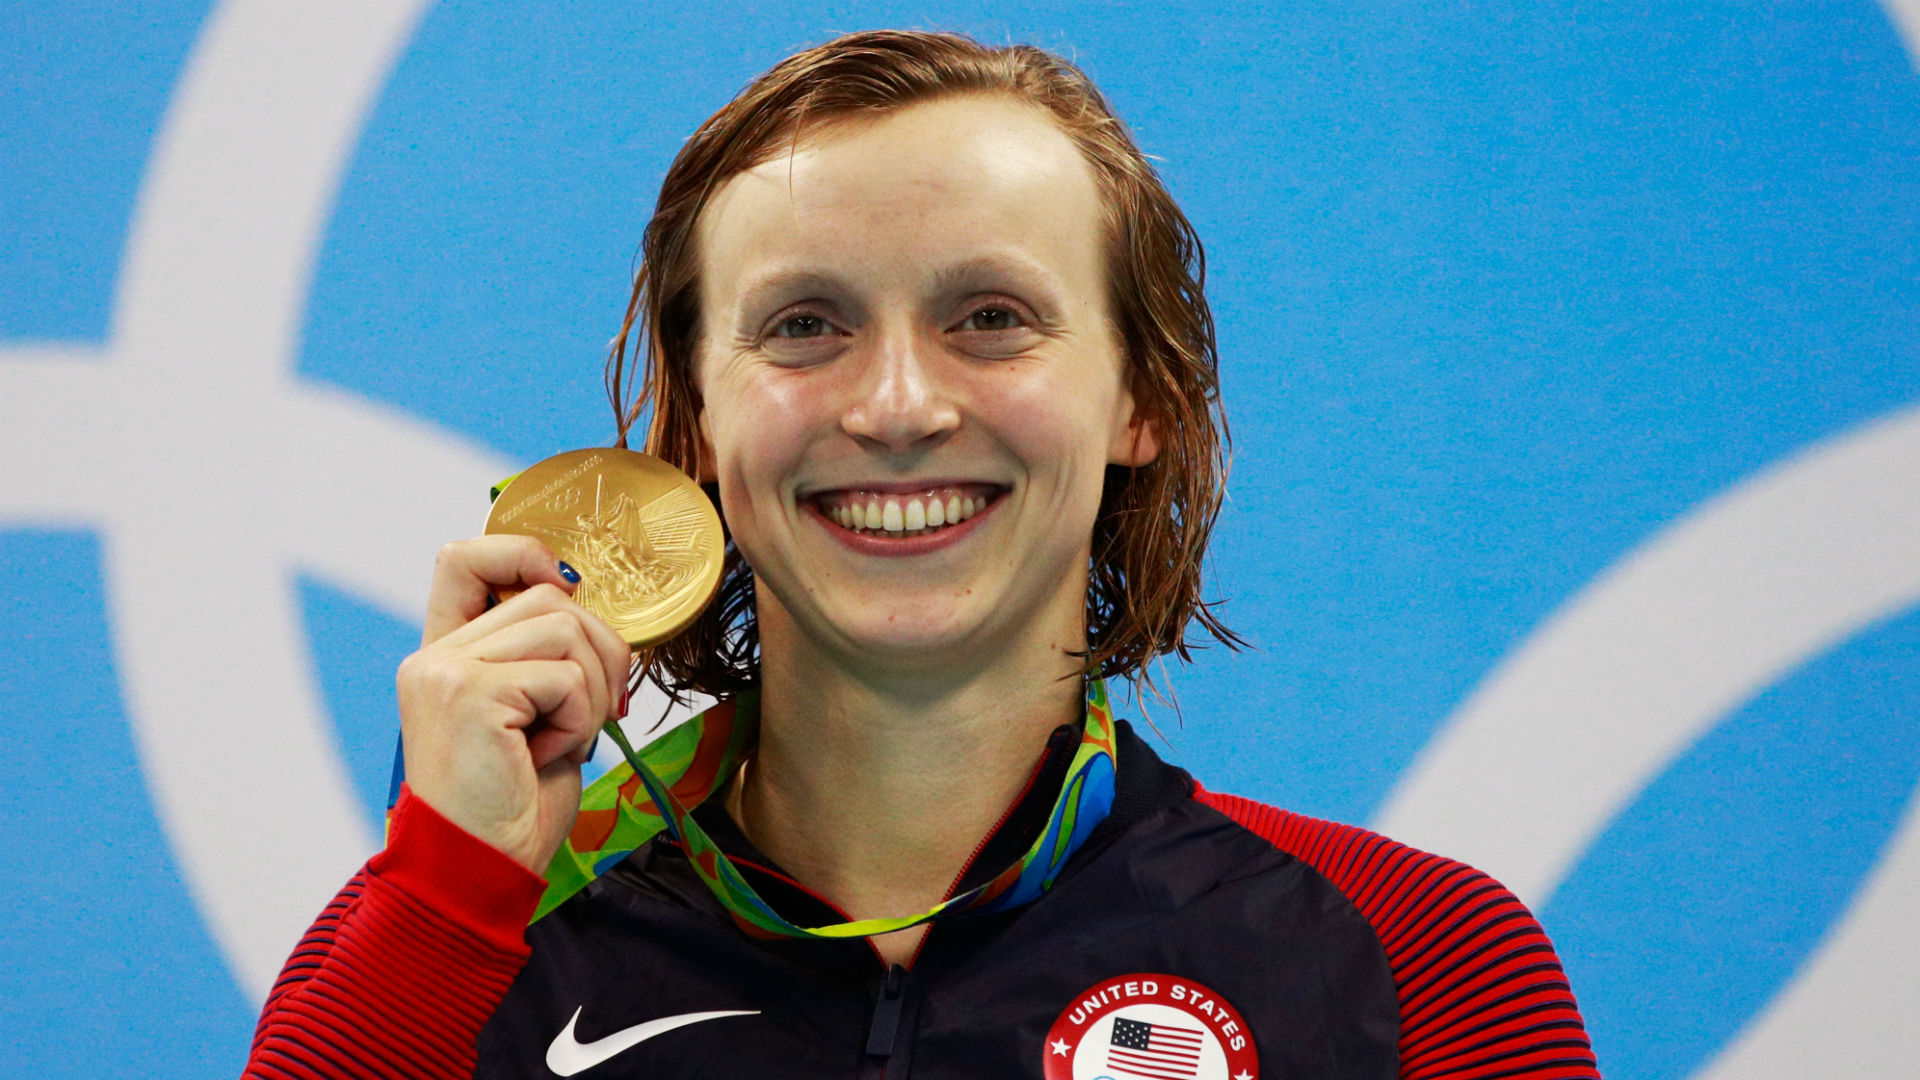 Debbie Meyer 3 Olympic Gold medals. 200,400,800 freestyle 1968. 15 individual World Records